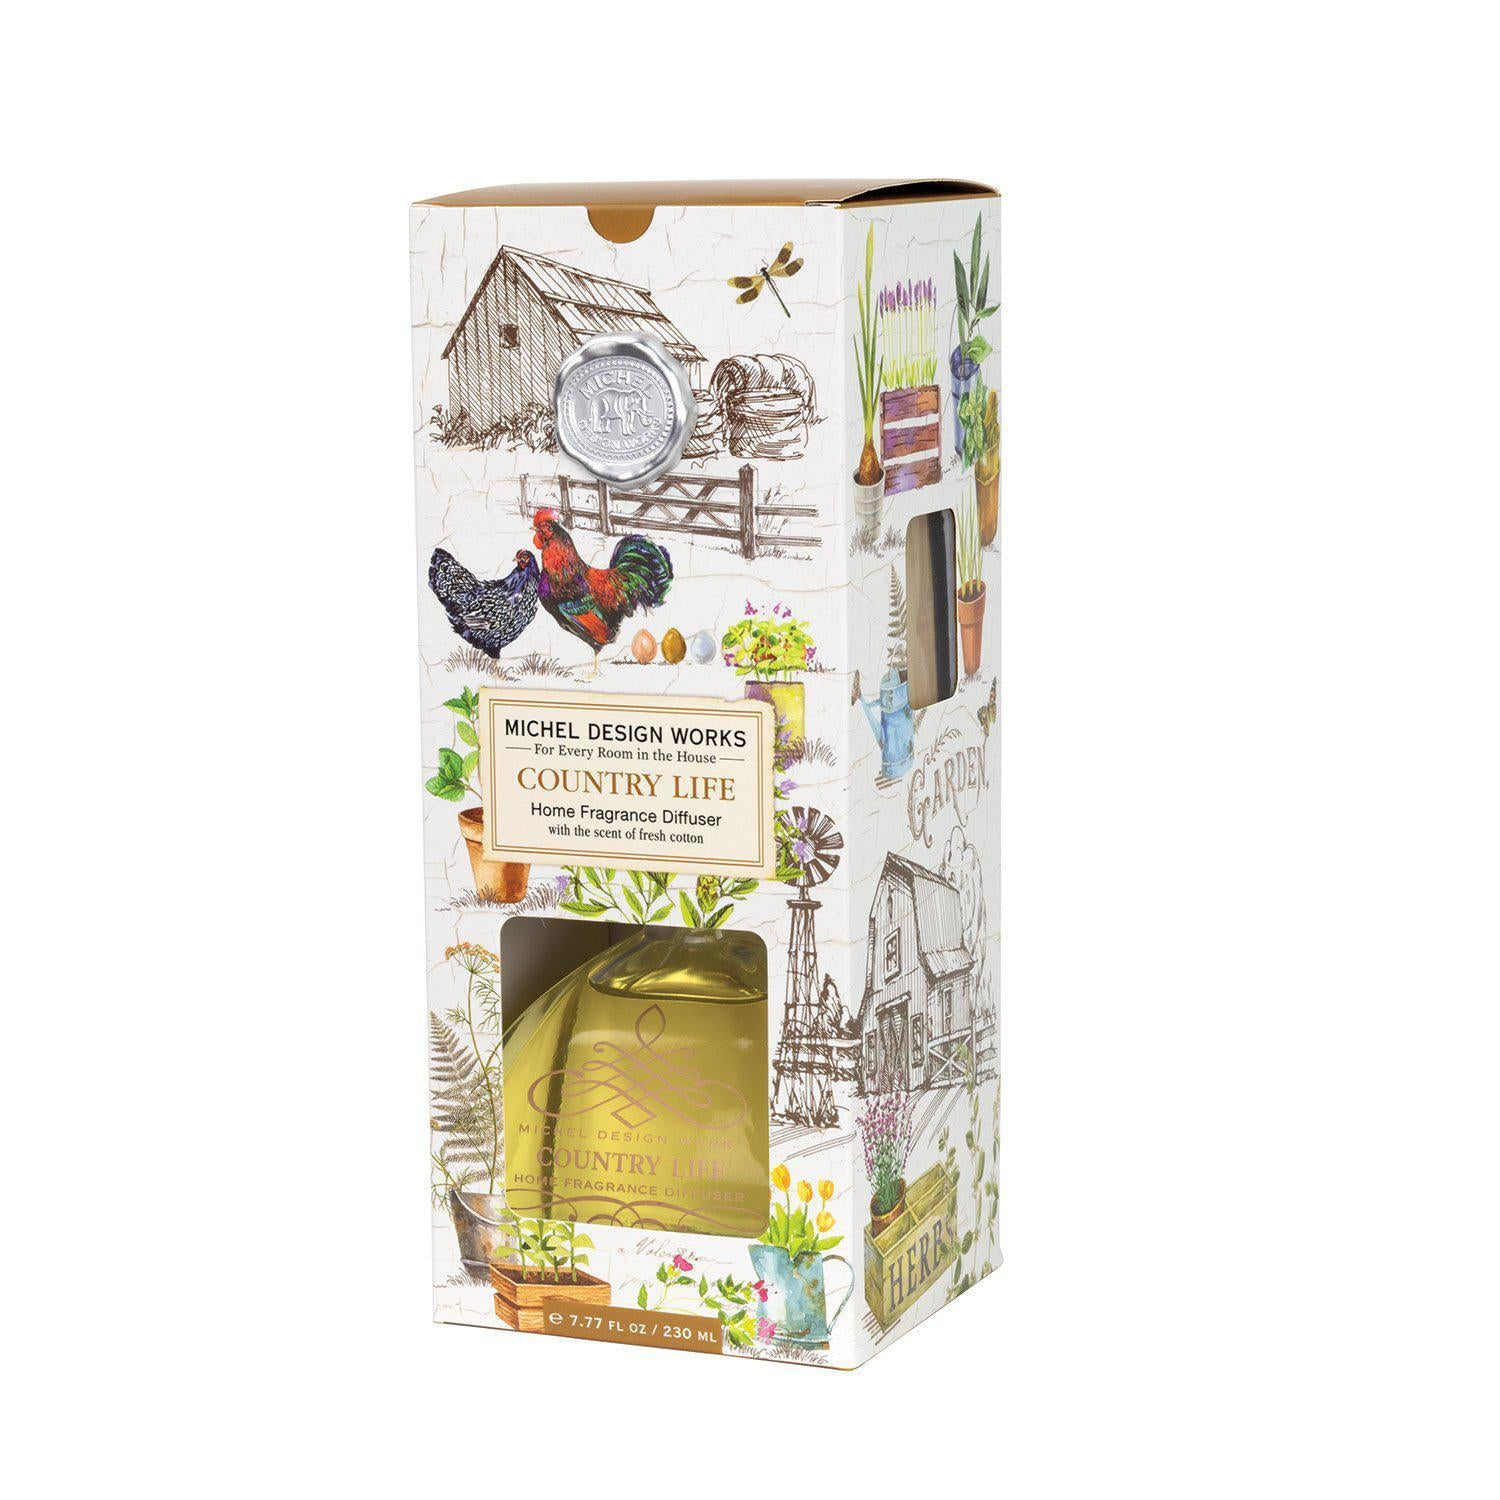 COUNTRY LIFE DIFFUSER HFD334